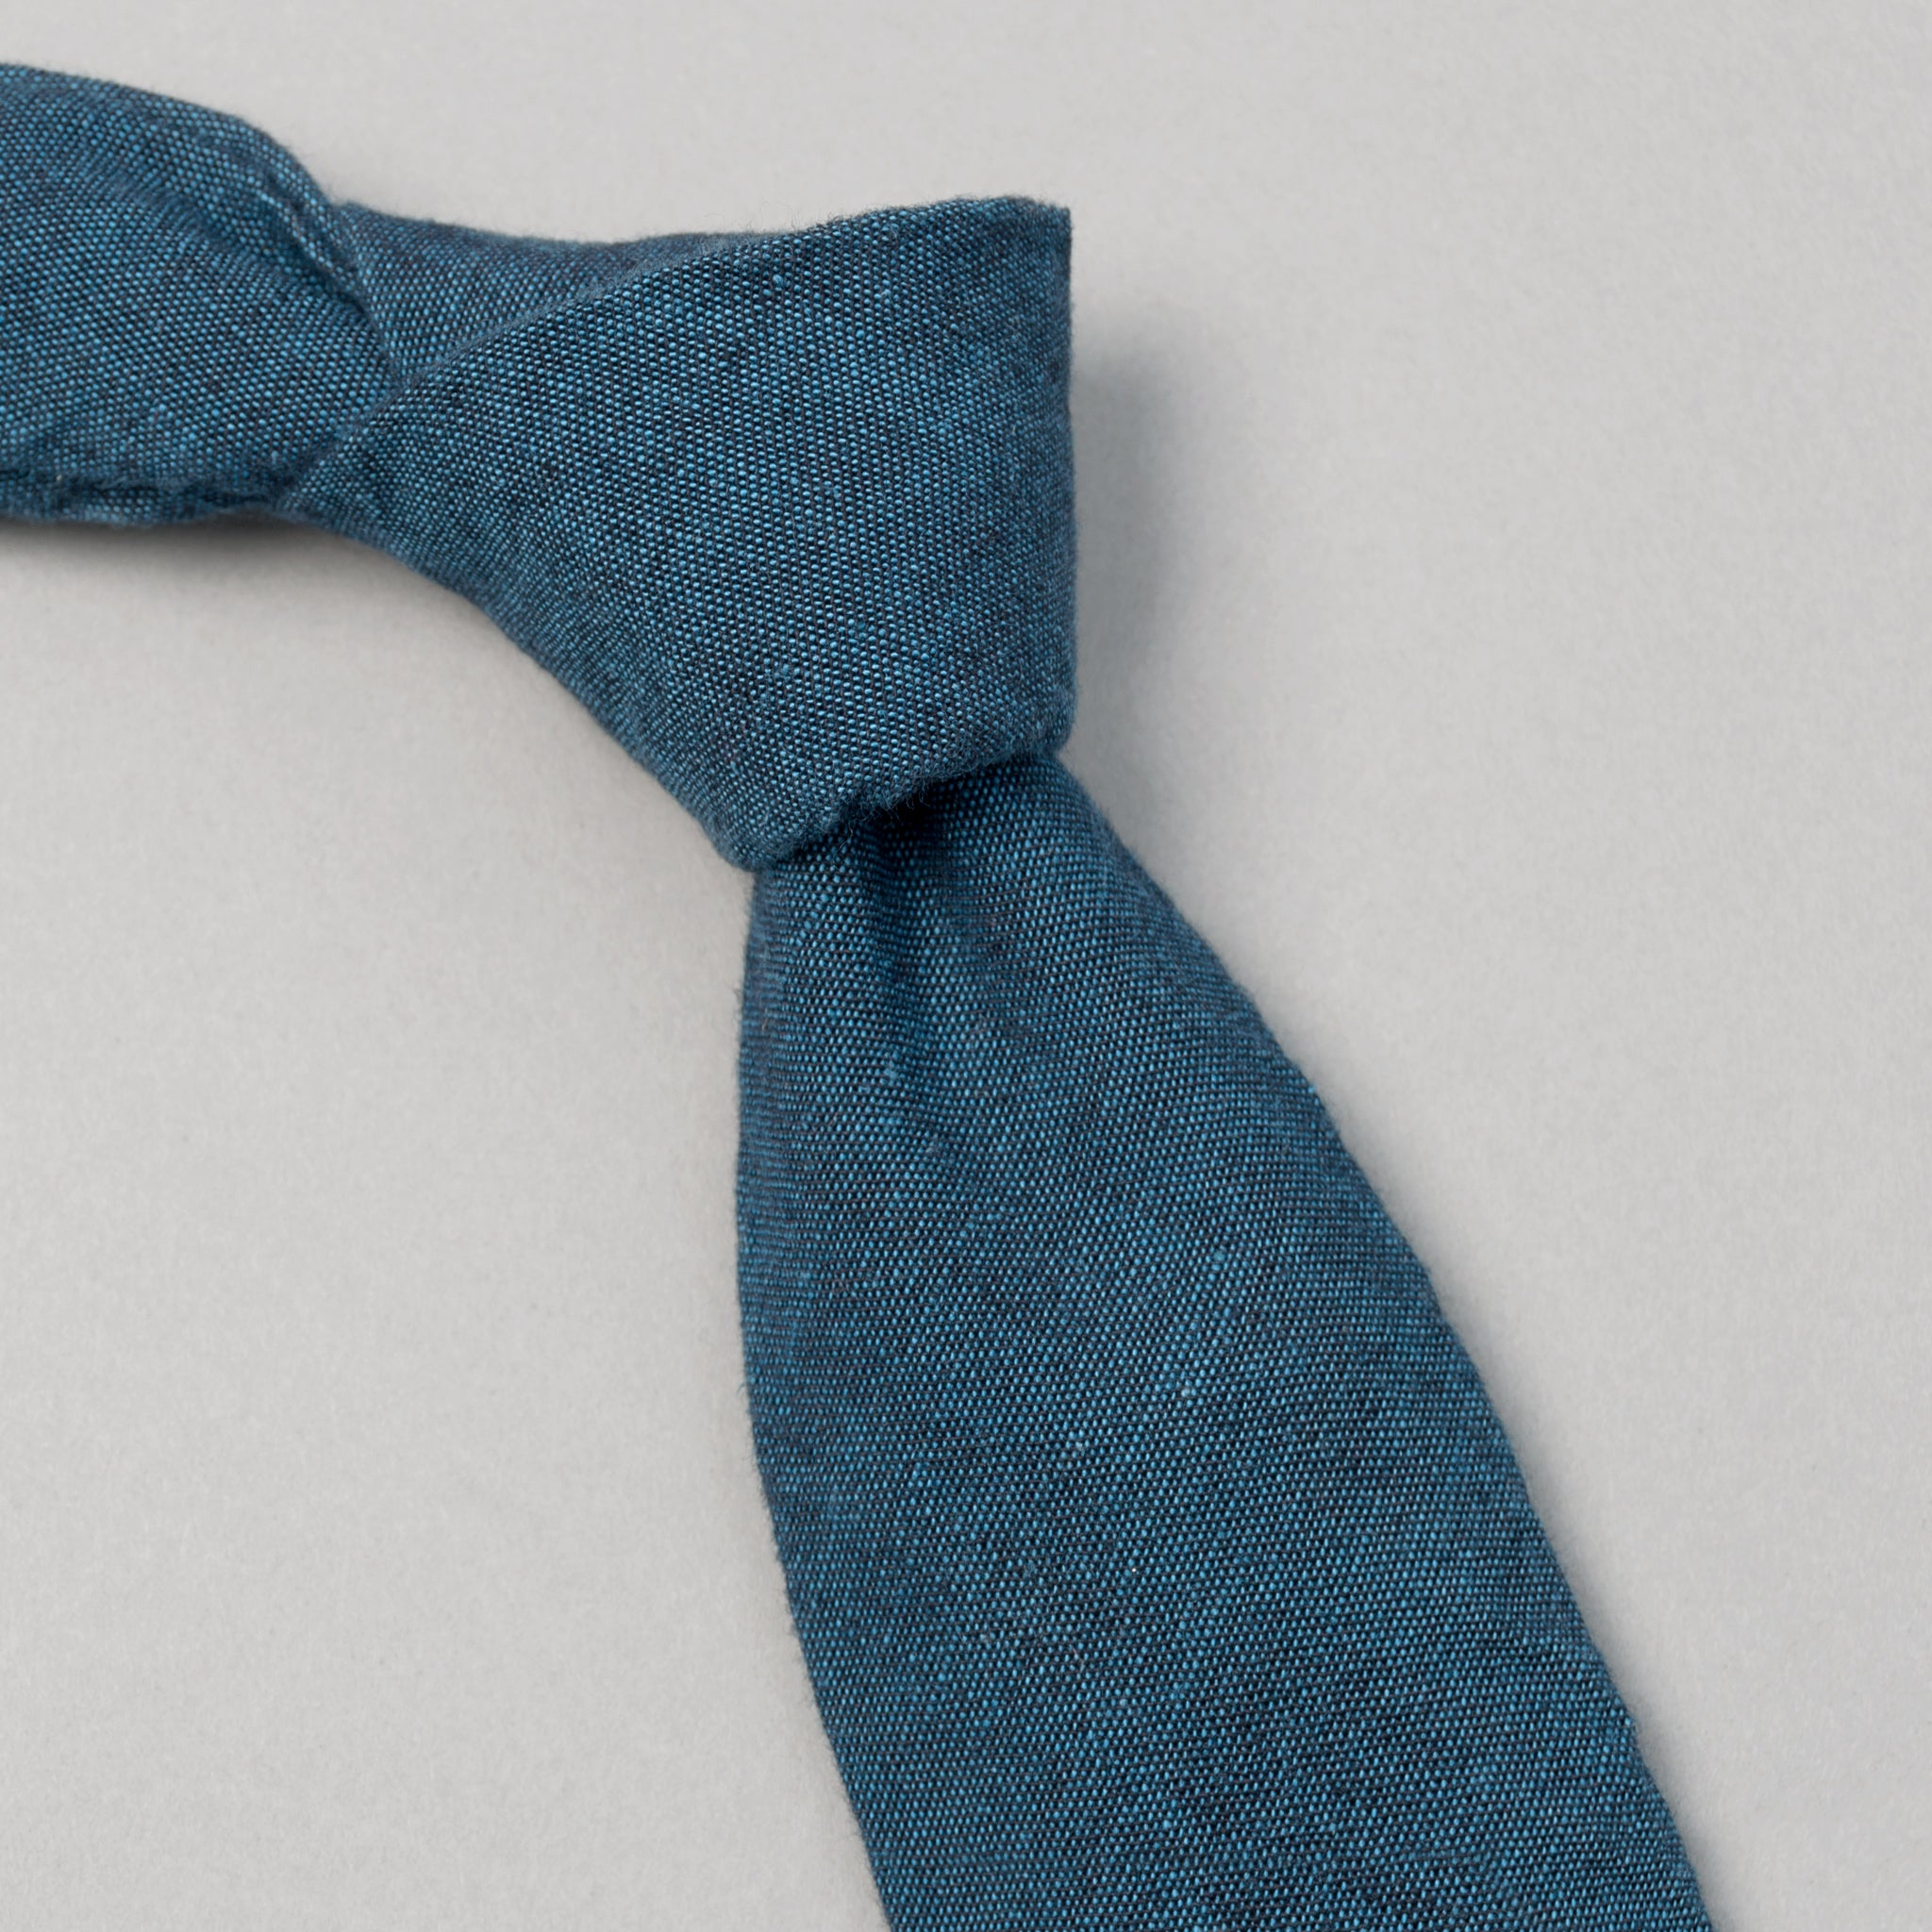 The Hill-Side - Light Indigo Overdyed Chambray Tie, Limited Edition - PT1-002IL - image 1